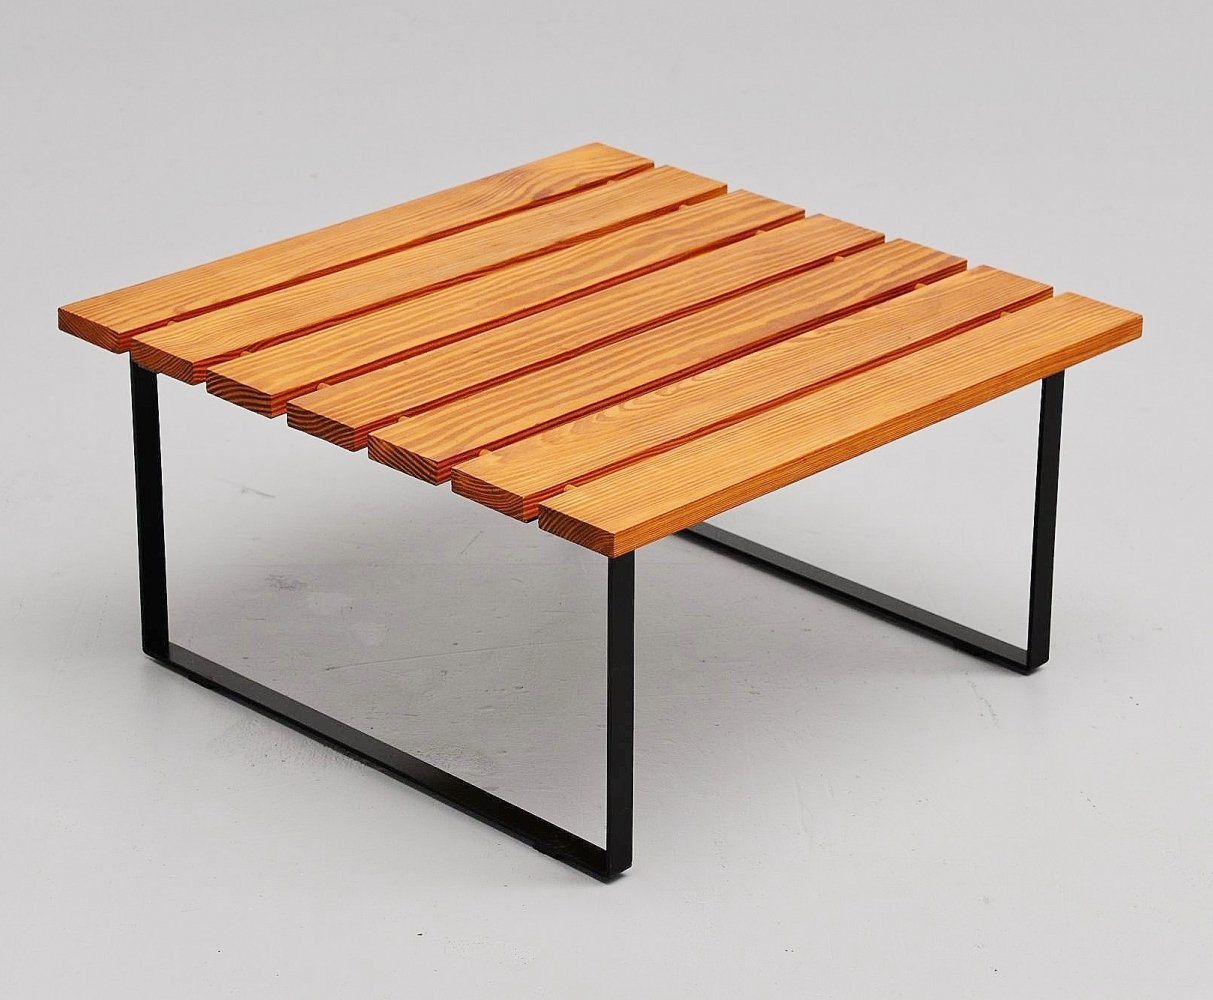 Slat table by Dutch architect, Holland 1950